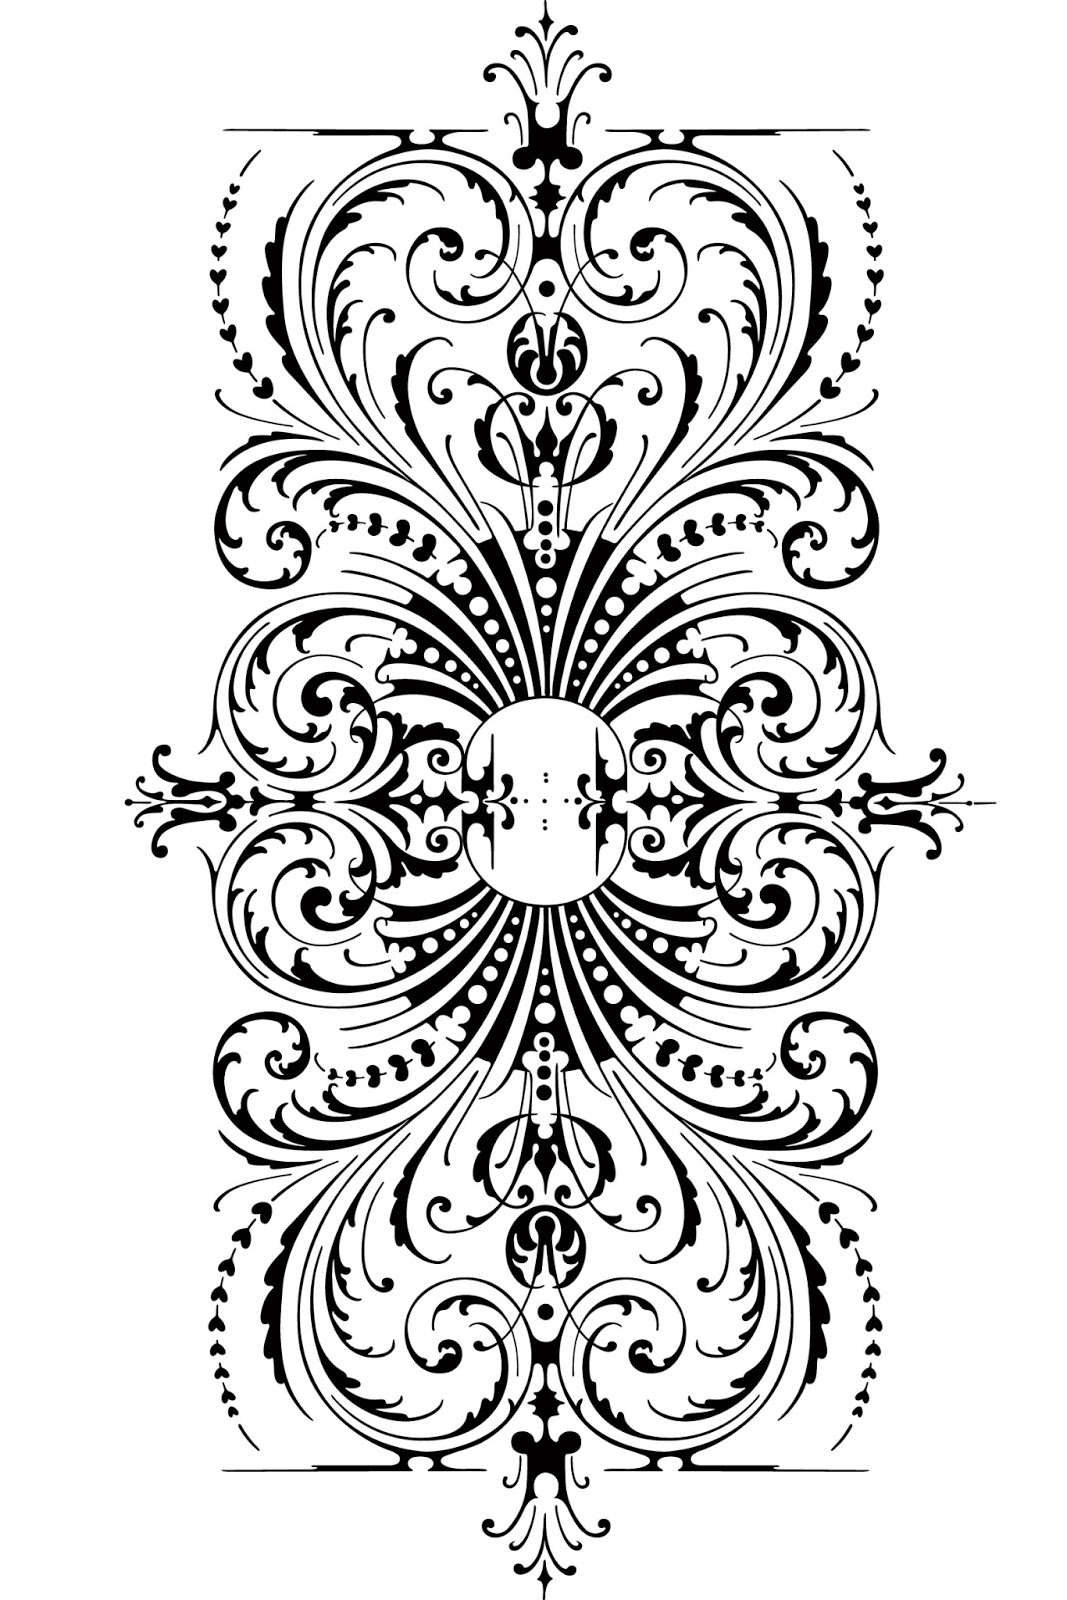 Free vintage clip art images calligraphic ornaments